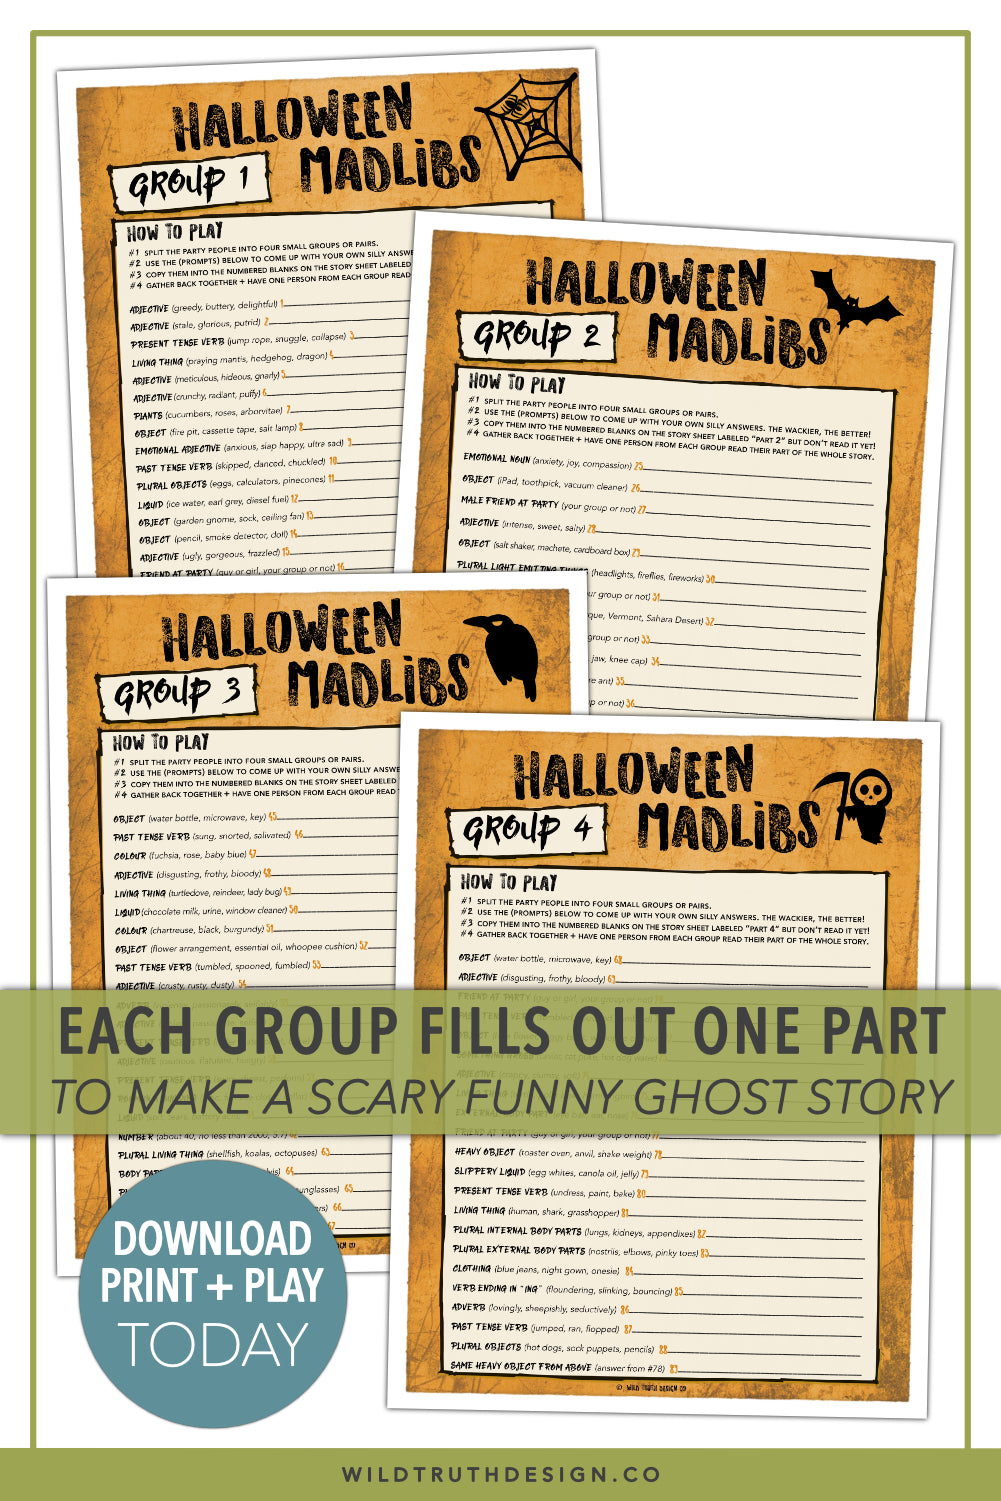 scary fun halloween mad libs party game for adults & teens